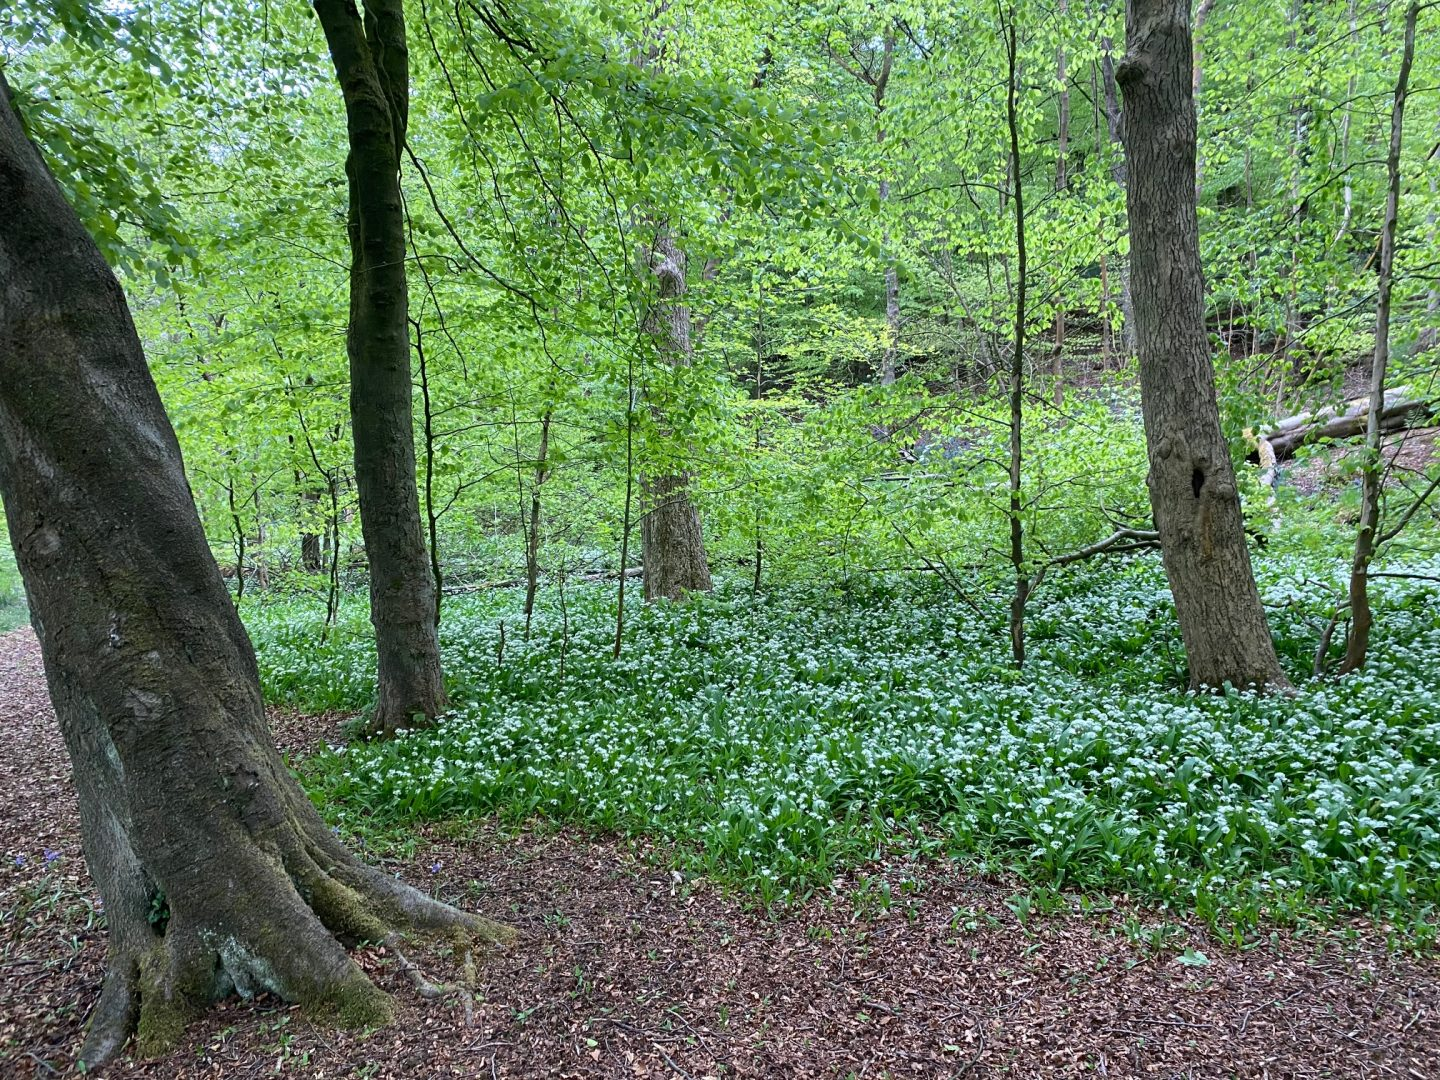 Wild garlic grows in woodland and on riverbanks